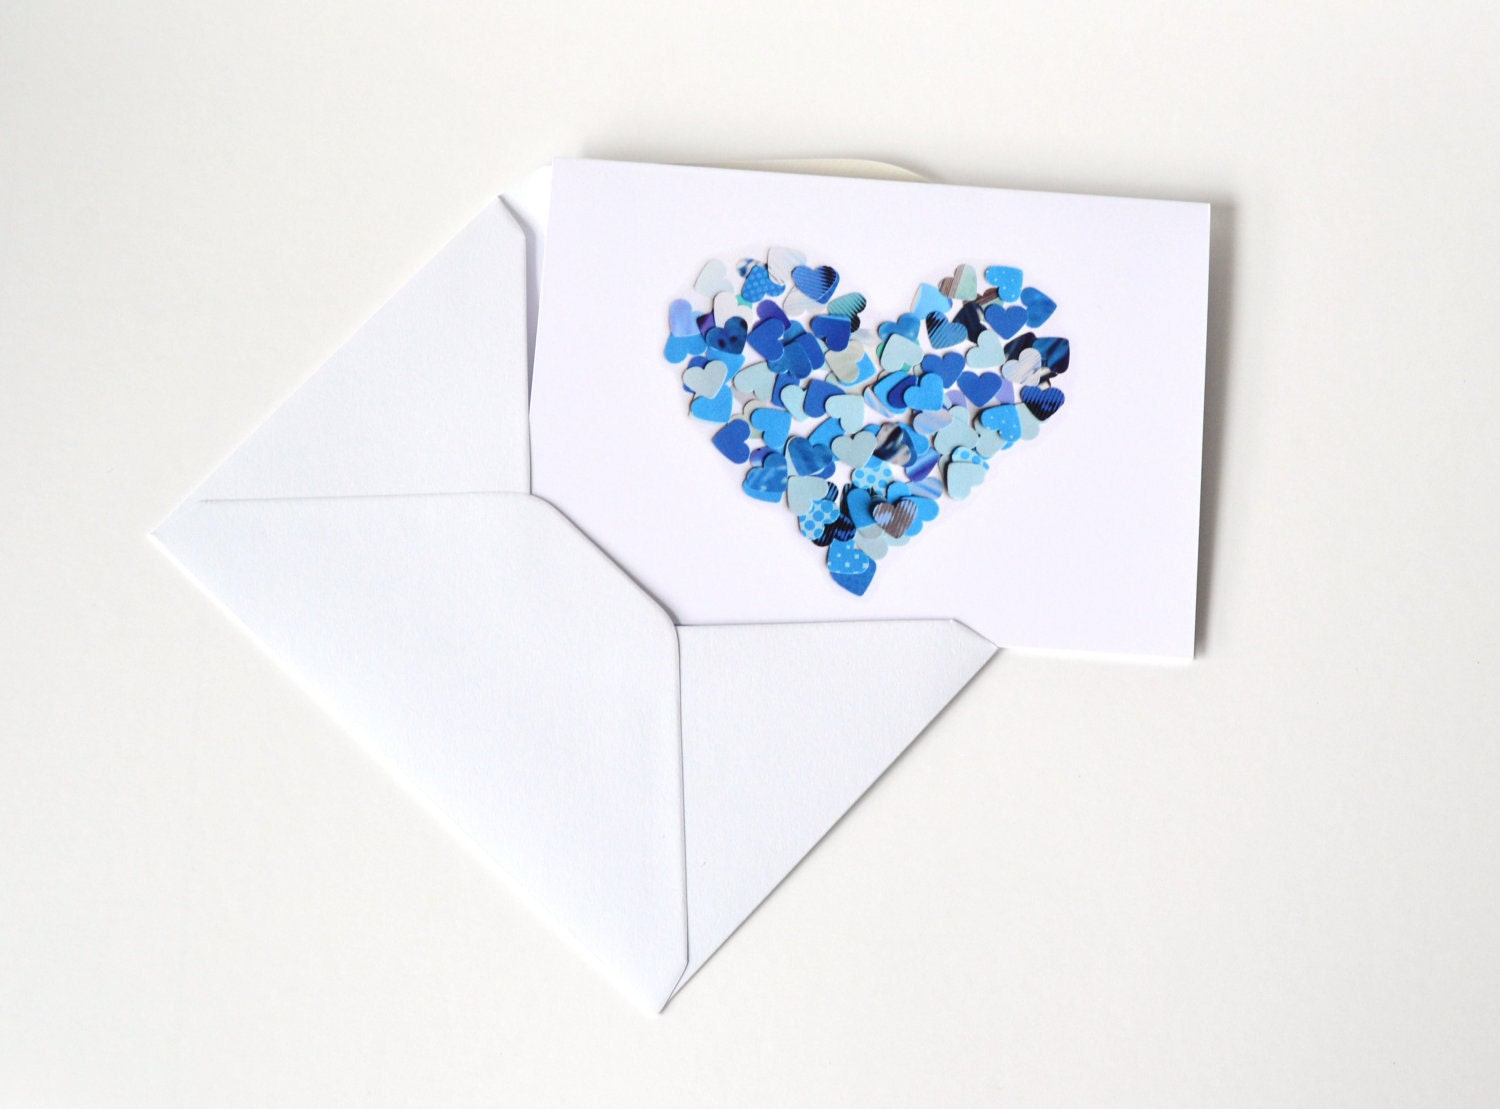 https://www.etsy.com/listing/86798287/blue-heart-greeting-card-with-envelope?ref=sr_gallery_12&ga_search_query=etsyitaliateam+blue&ga_view_type=gallery&ga_ship_to=IT&ga_page=2&ga_search_type=all&ga_facet=etsyitaliateam+blue